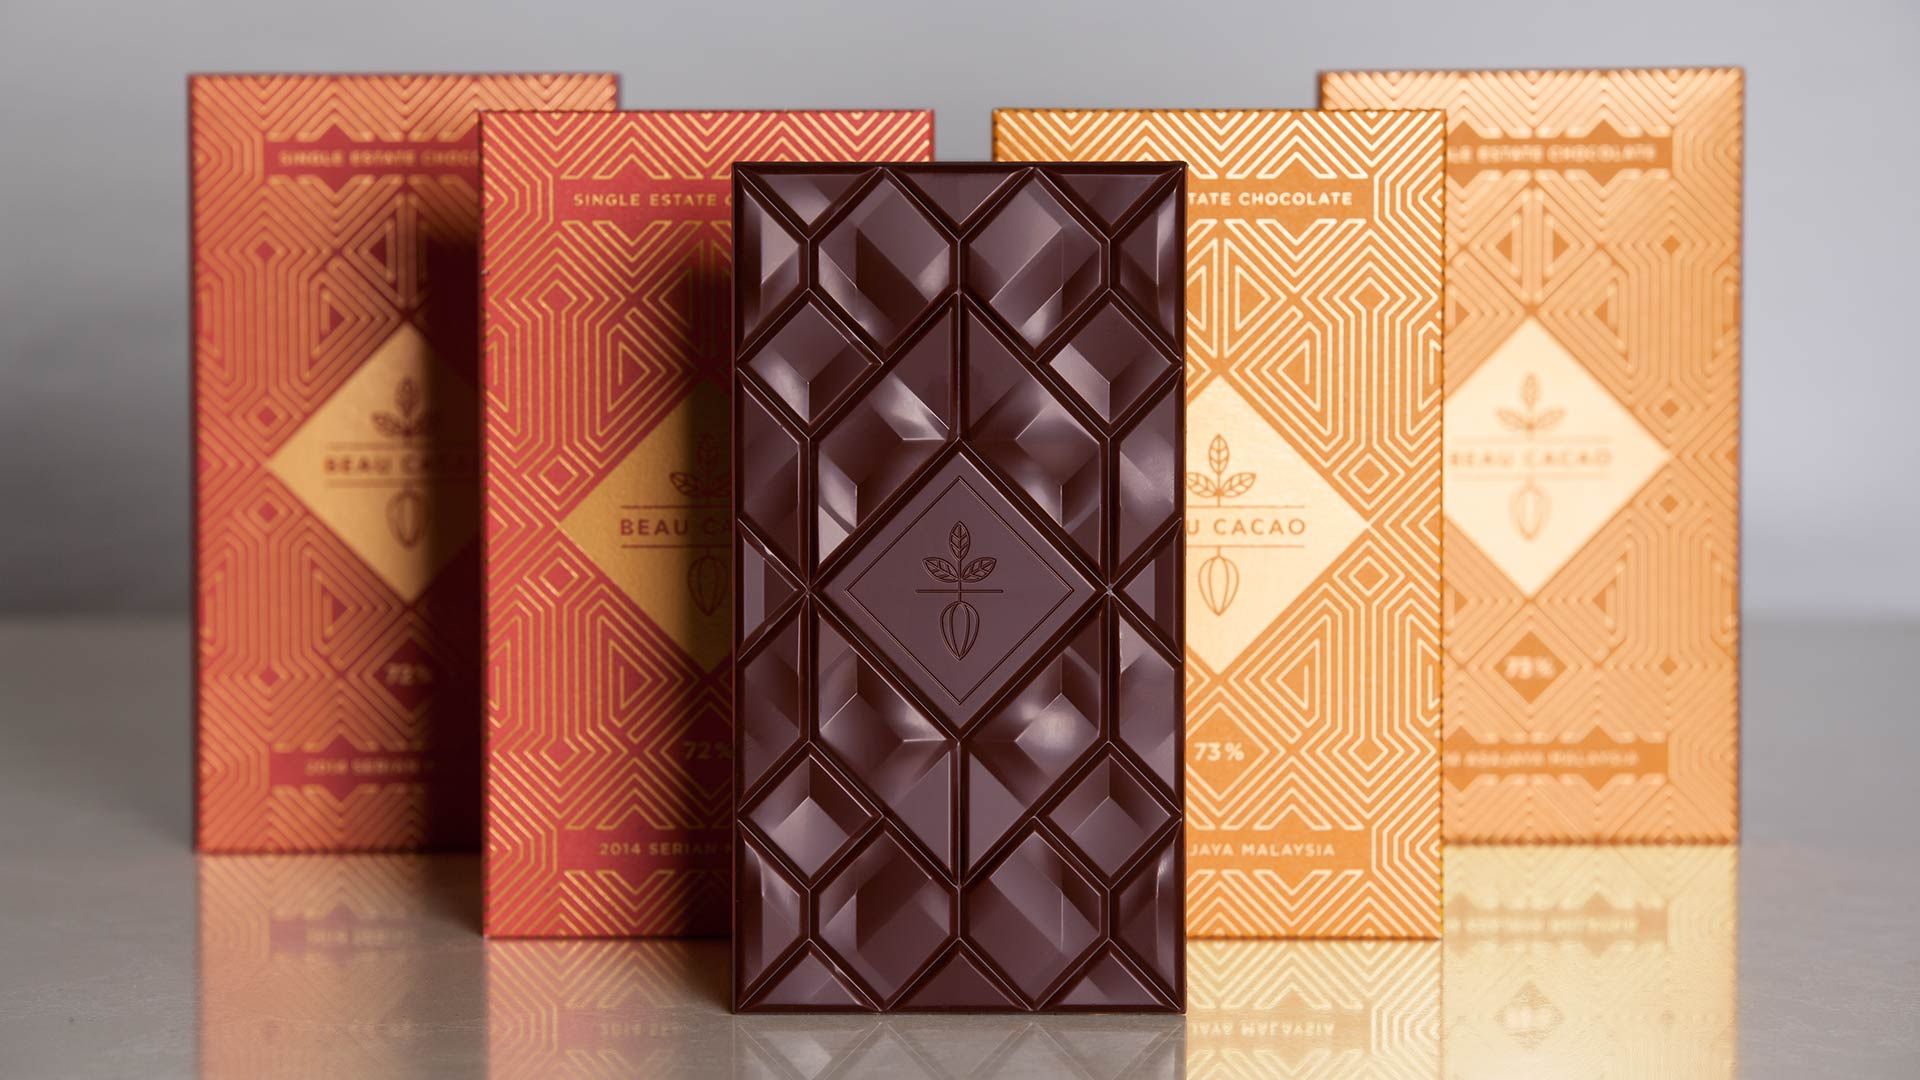 Beau Caco- Chocolate Packaging